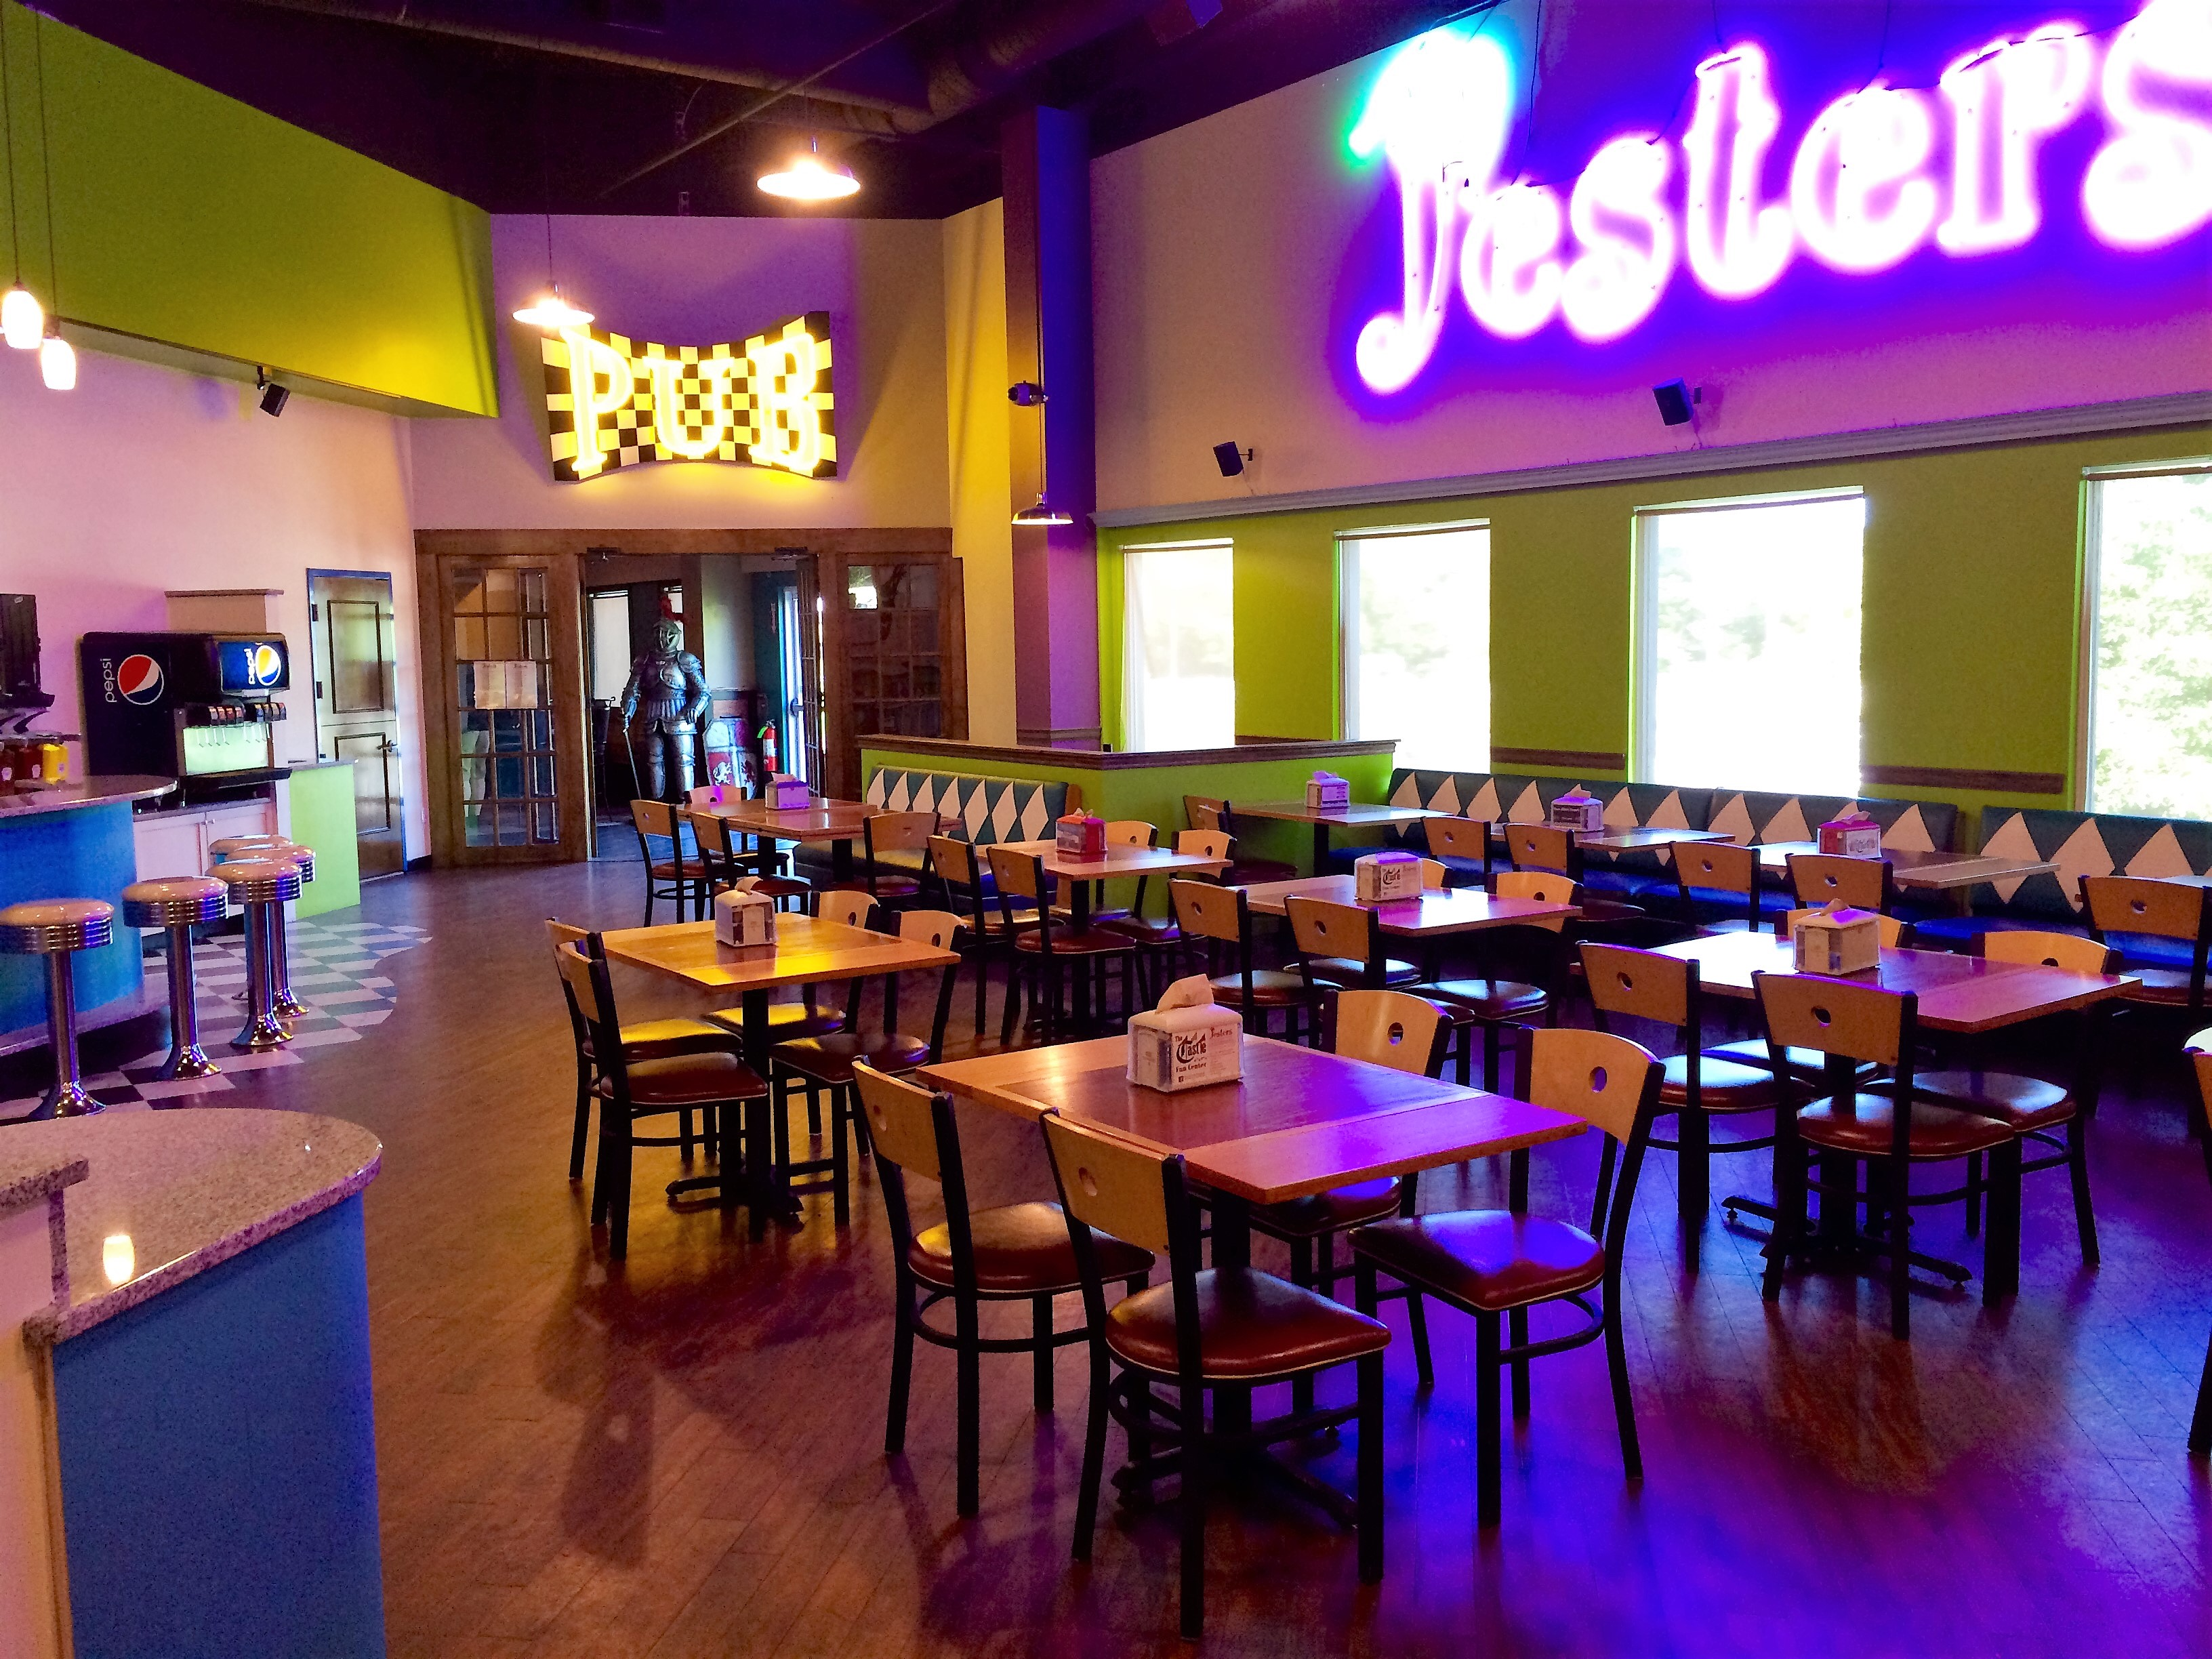 jesters-restaurant-pub-chester-ny